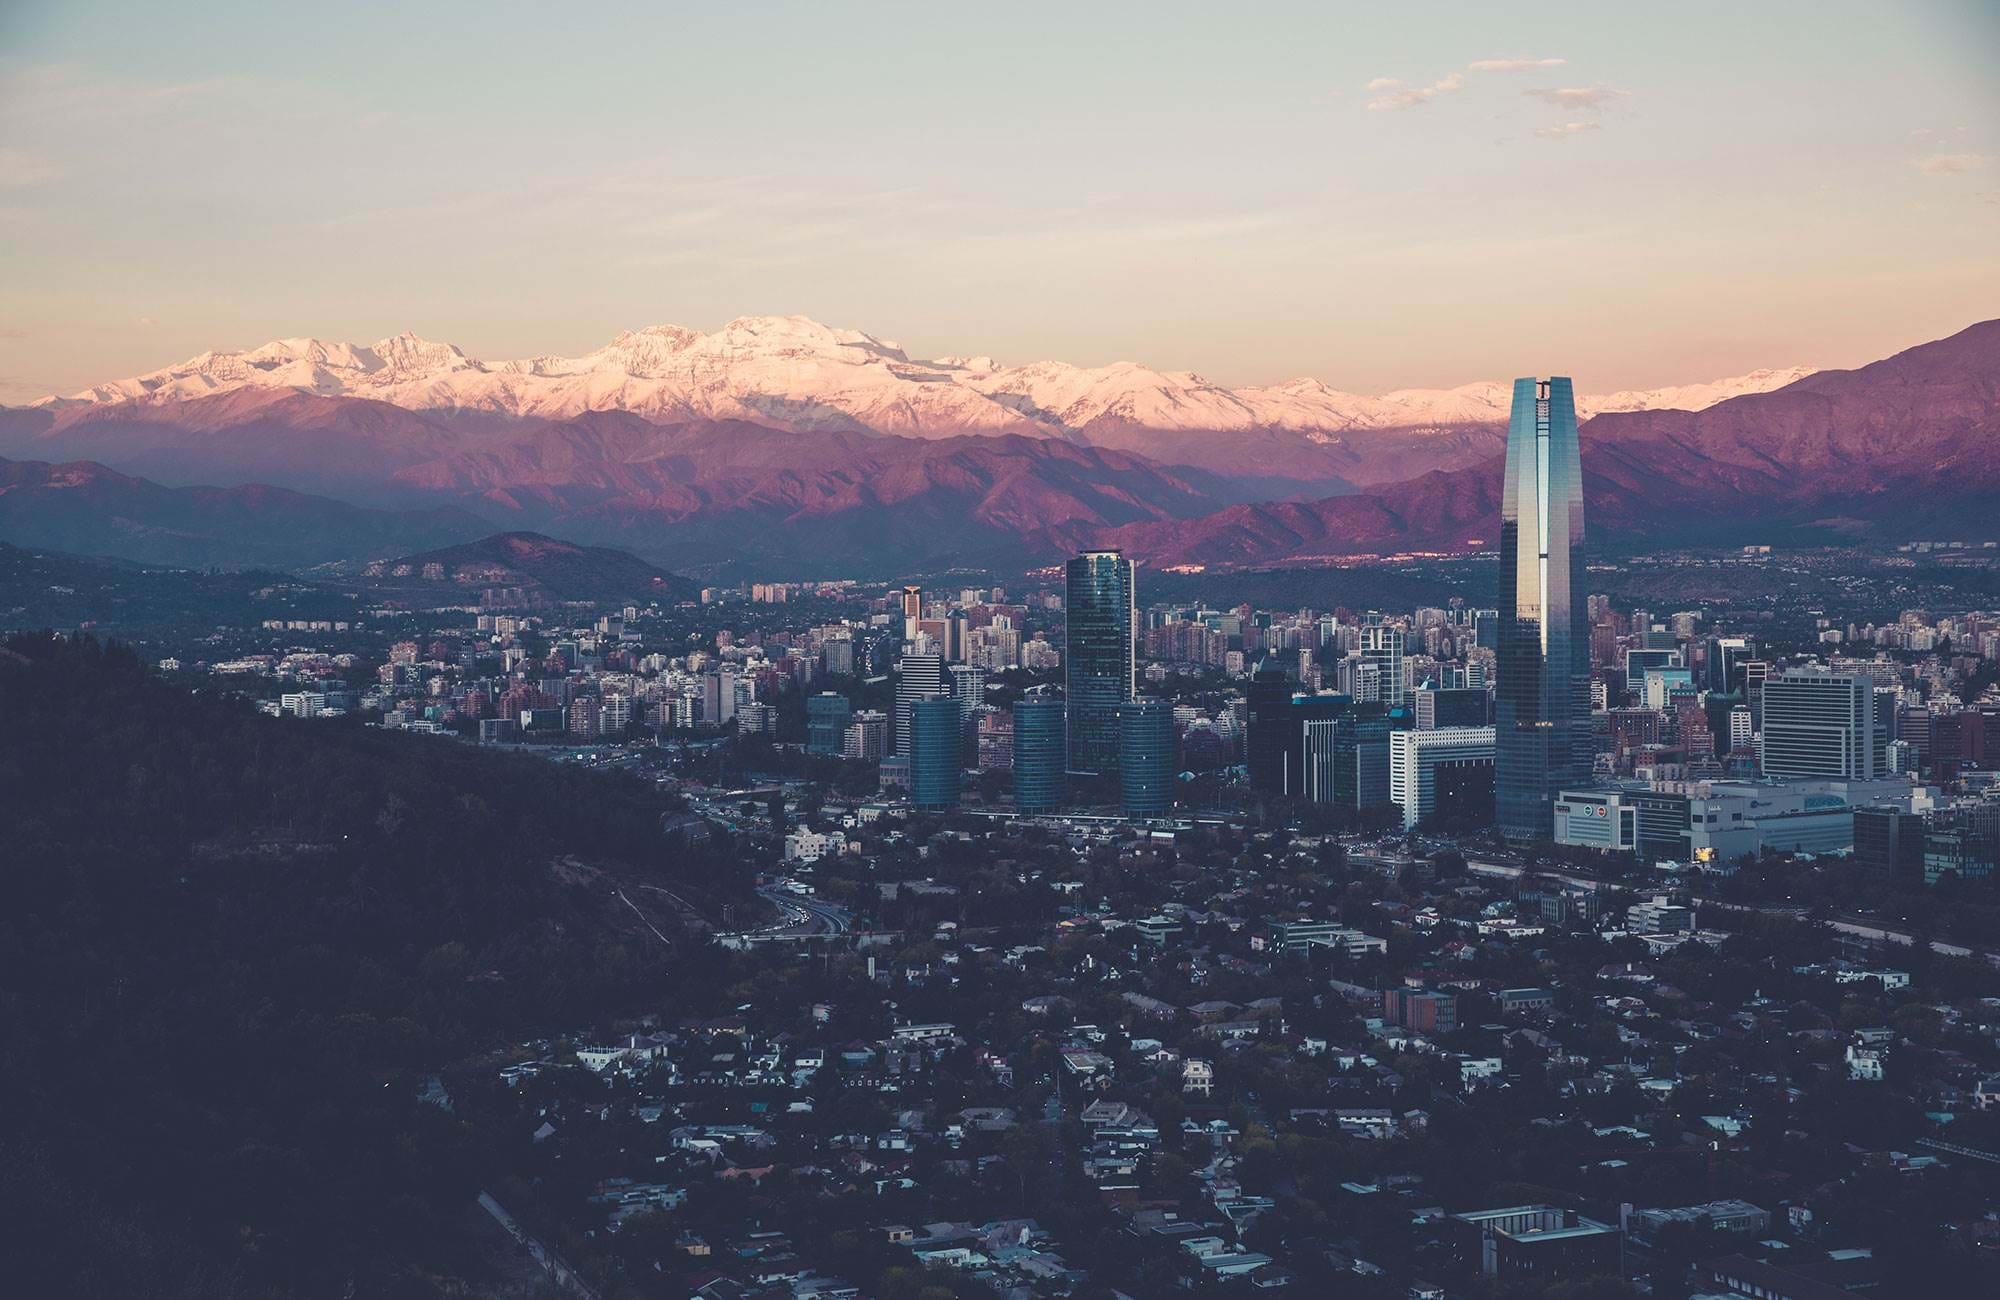 santiago-chili-city-view-cover